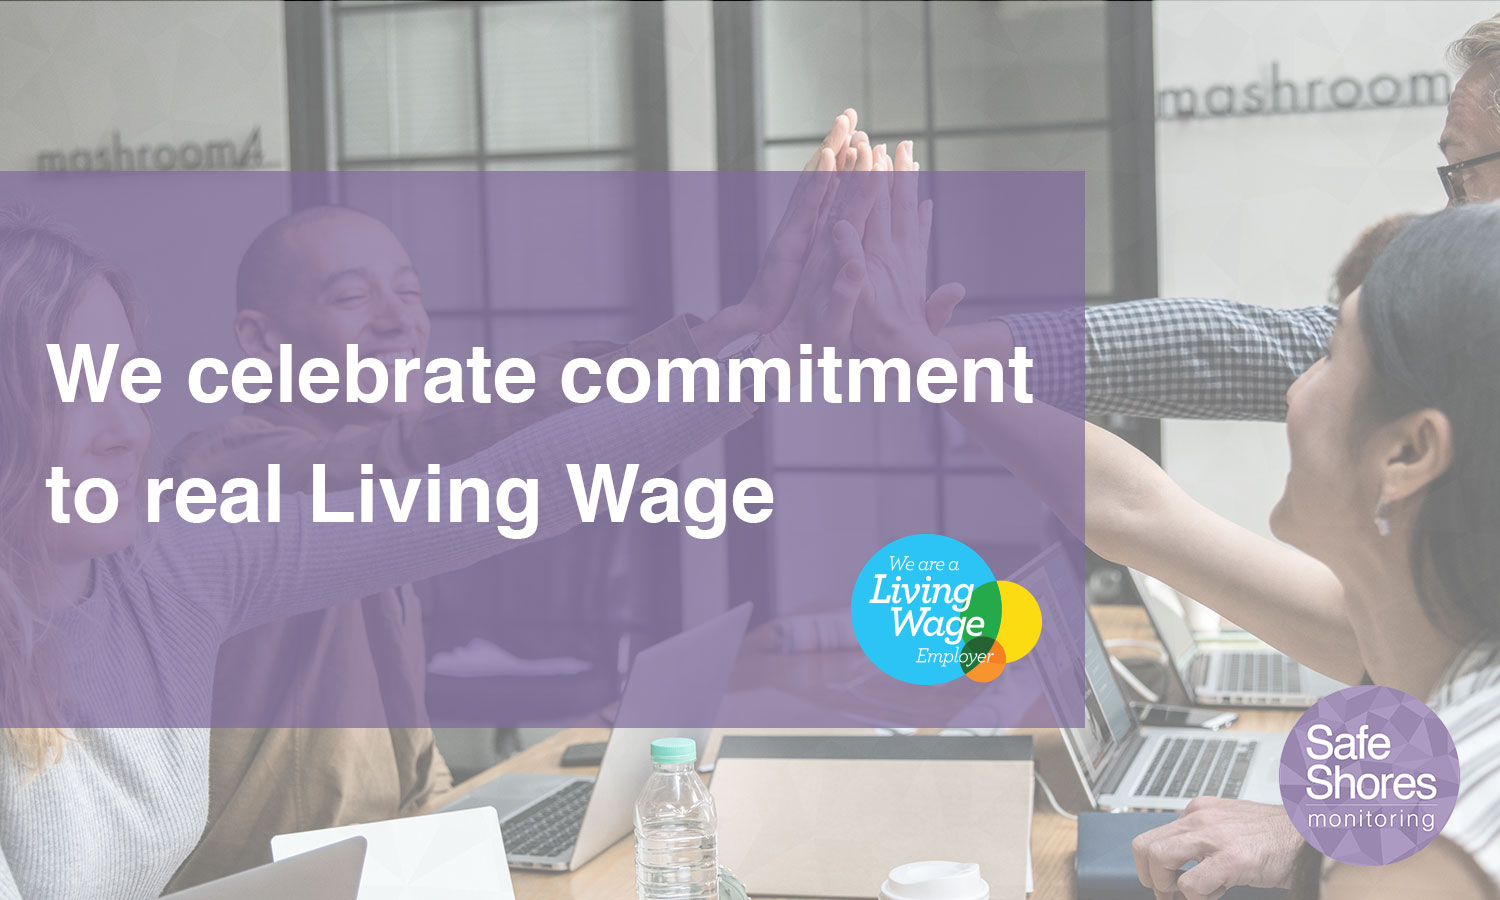 Safe Shores Monitoring celebrate commitment to Living Wage